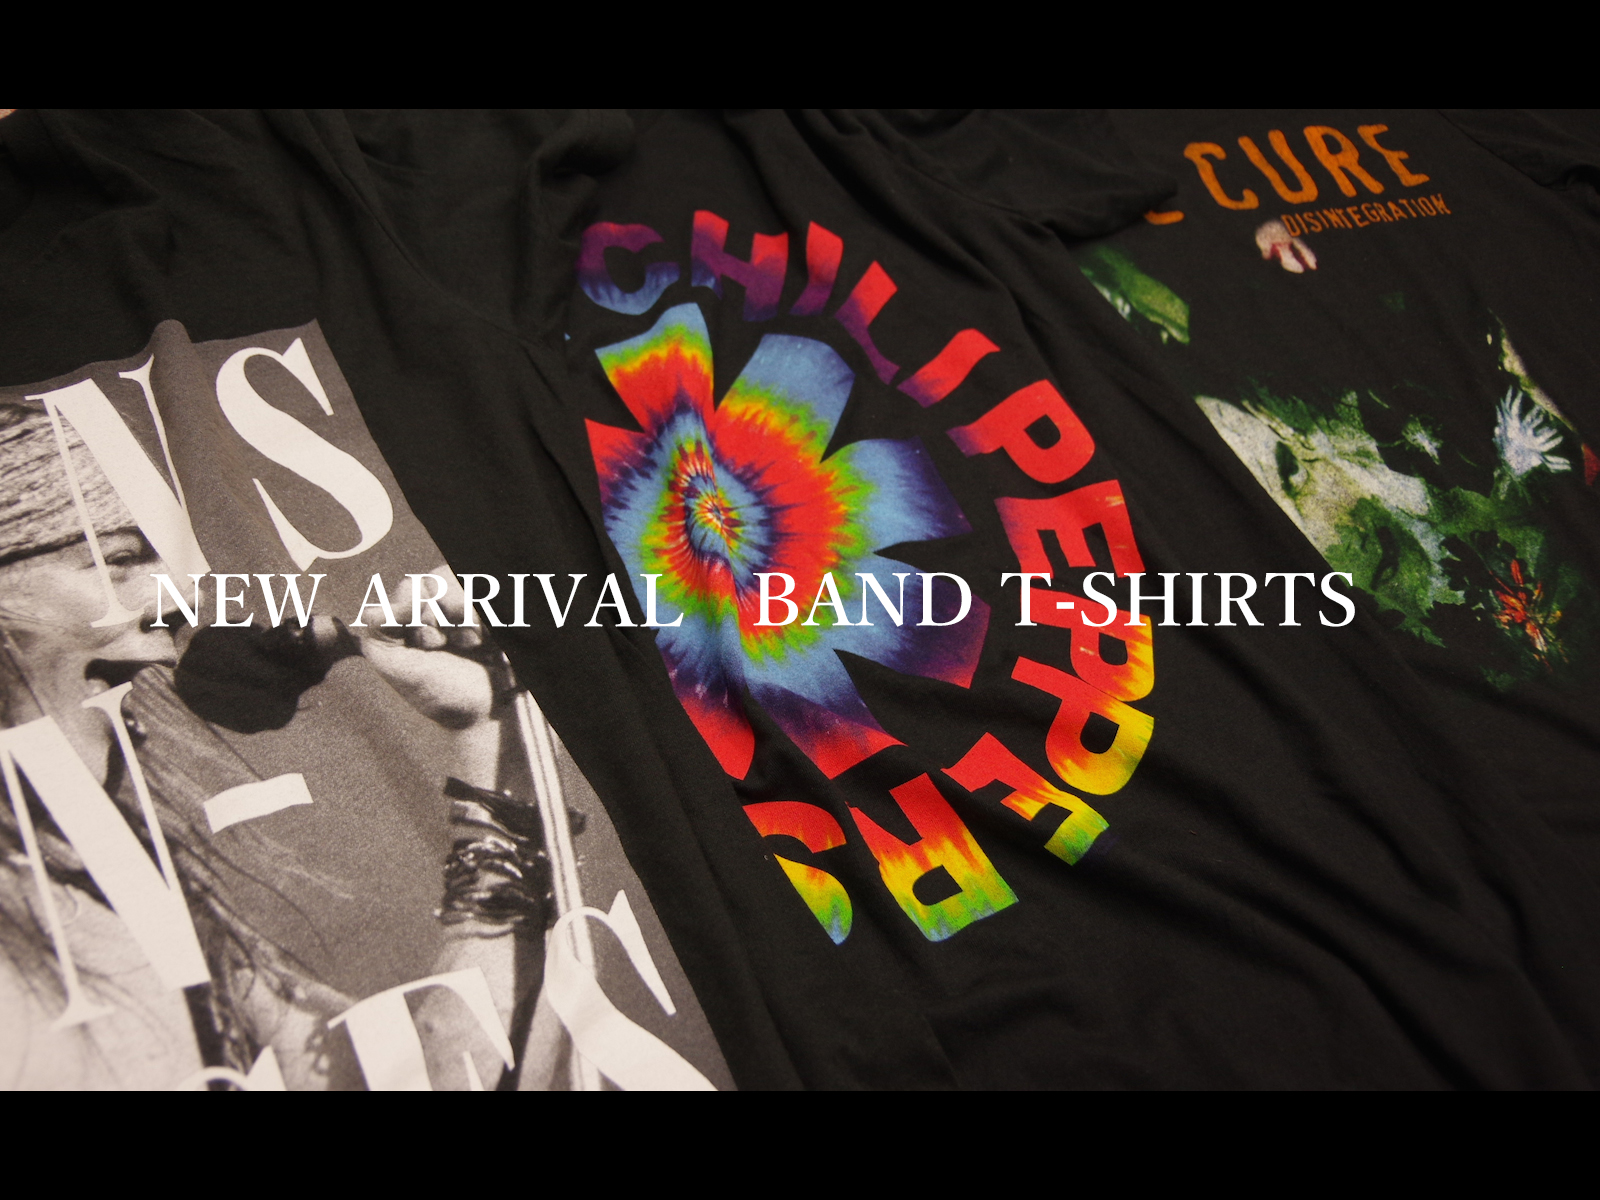 NEW ARRIVAL / BAND T-SHIRTS SUMMER 2016 Vol.2